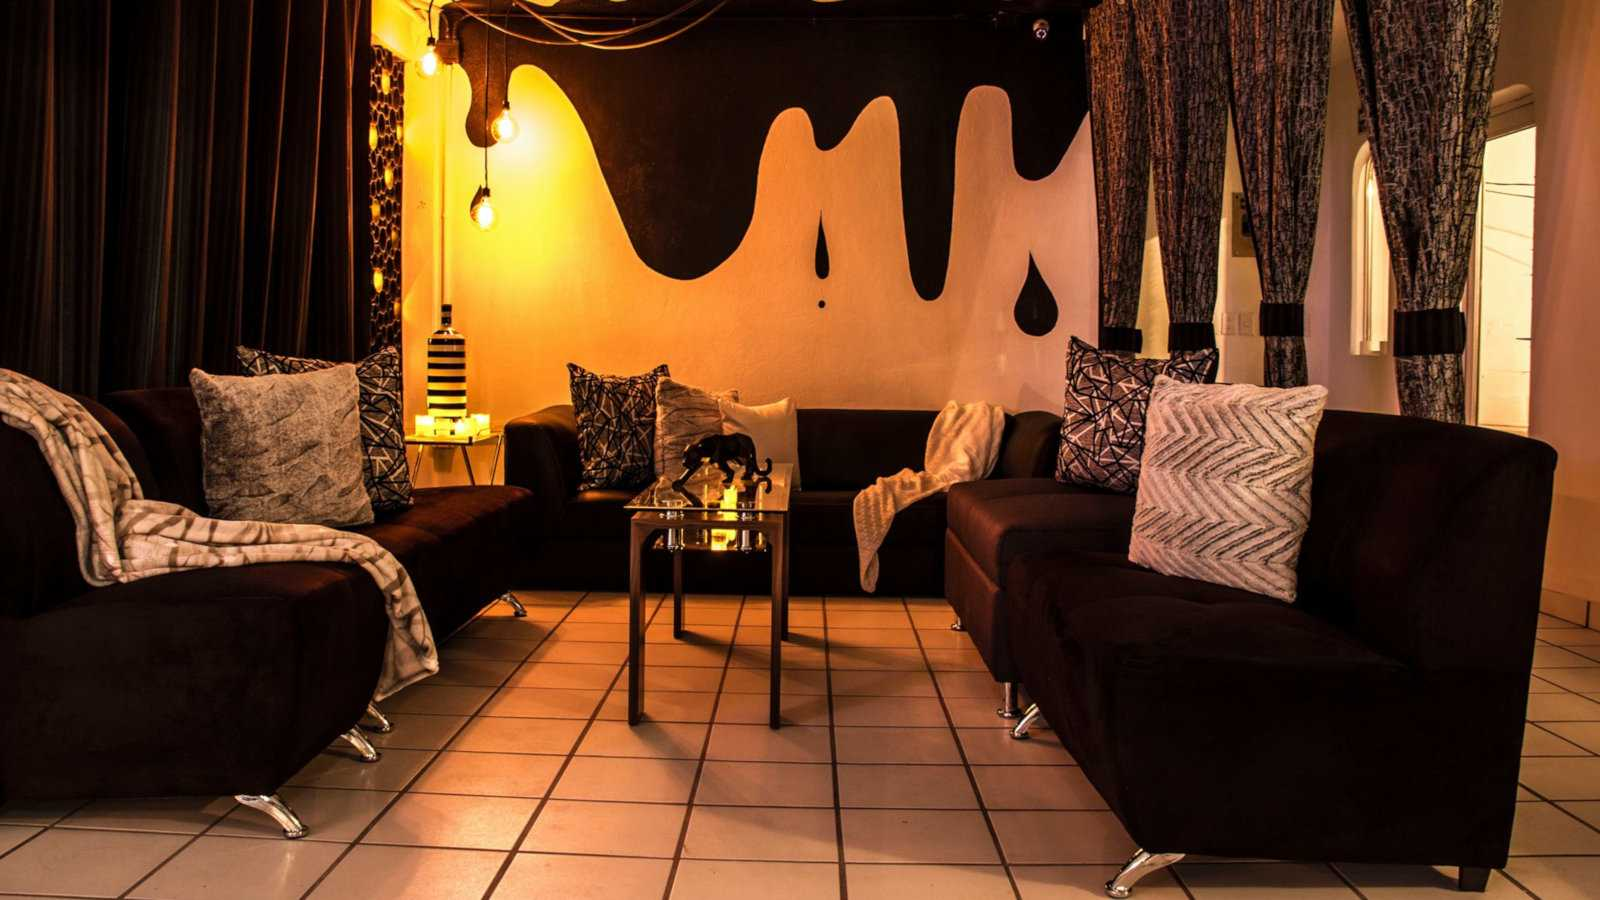 Vela Lounge and Hostel is a cool gay friendly spot to stay in Puerto Vallarta